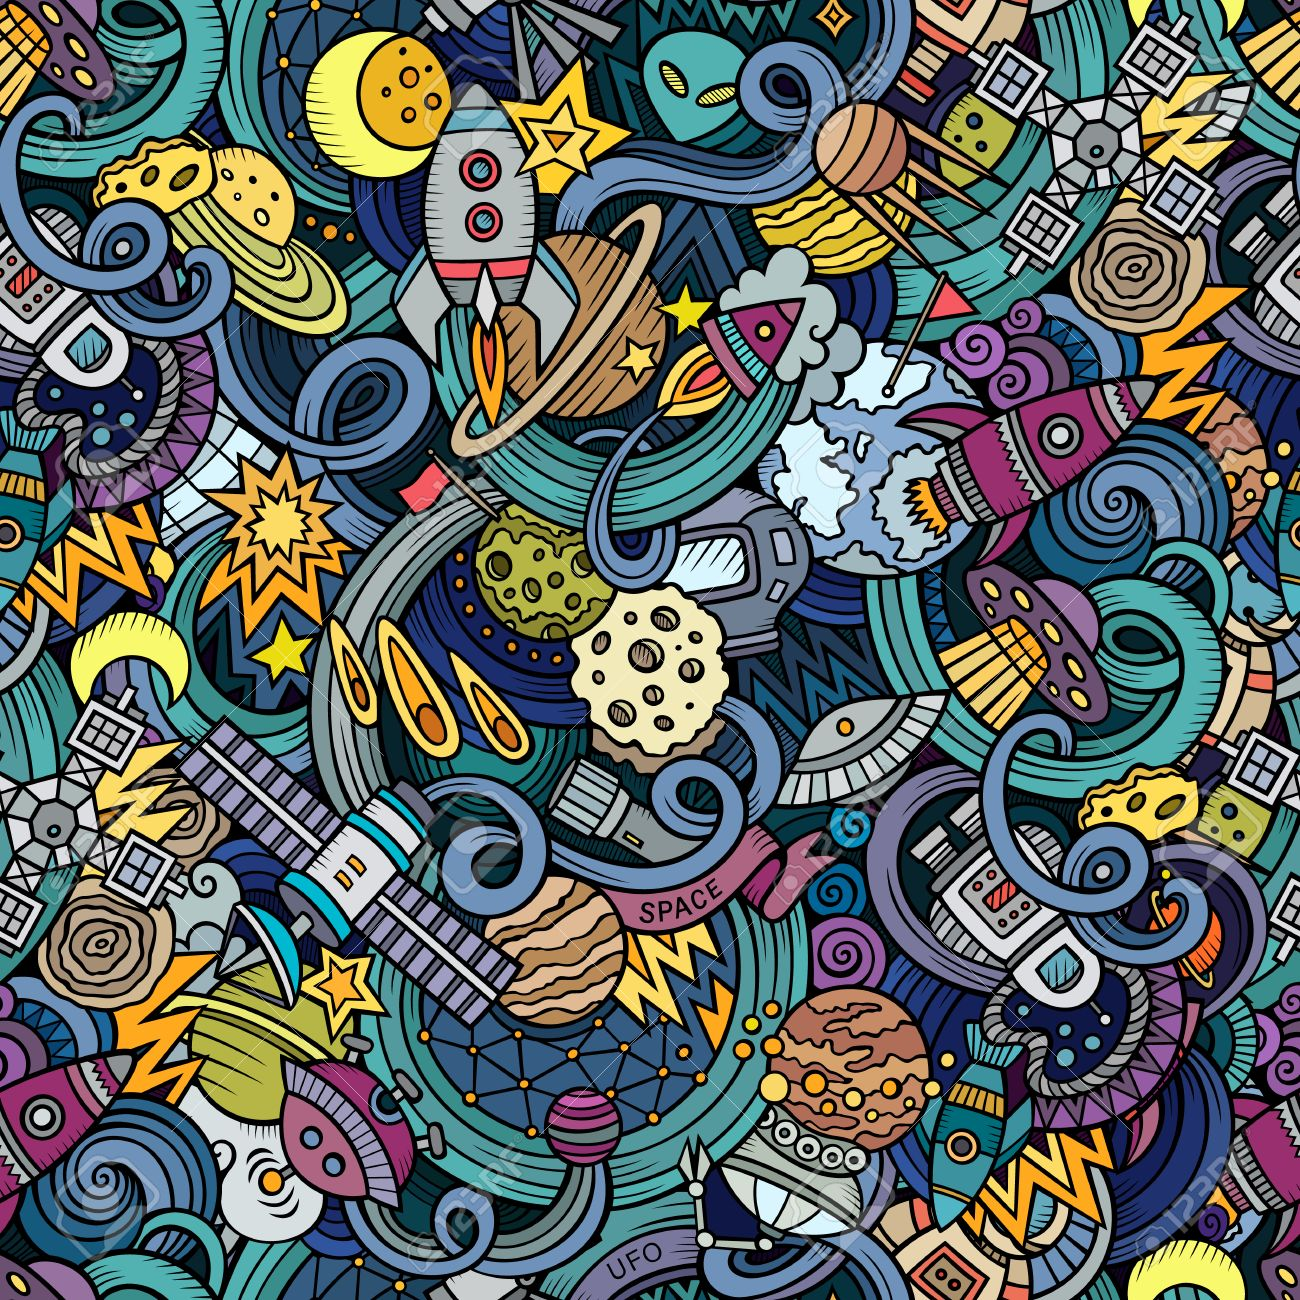 Cartoon doodles on the subject of space style theme seamless pattern. background - 49148475